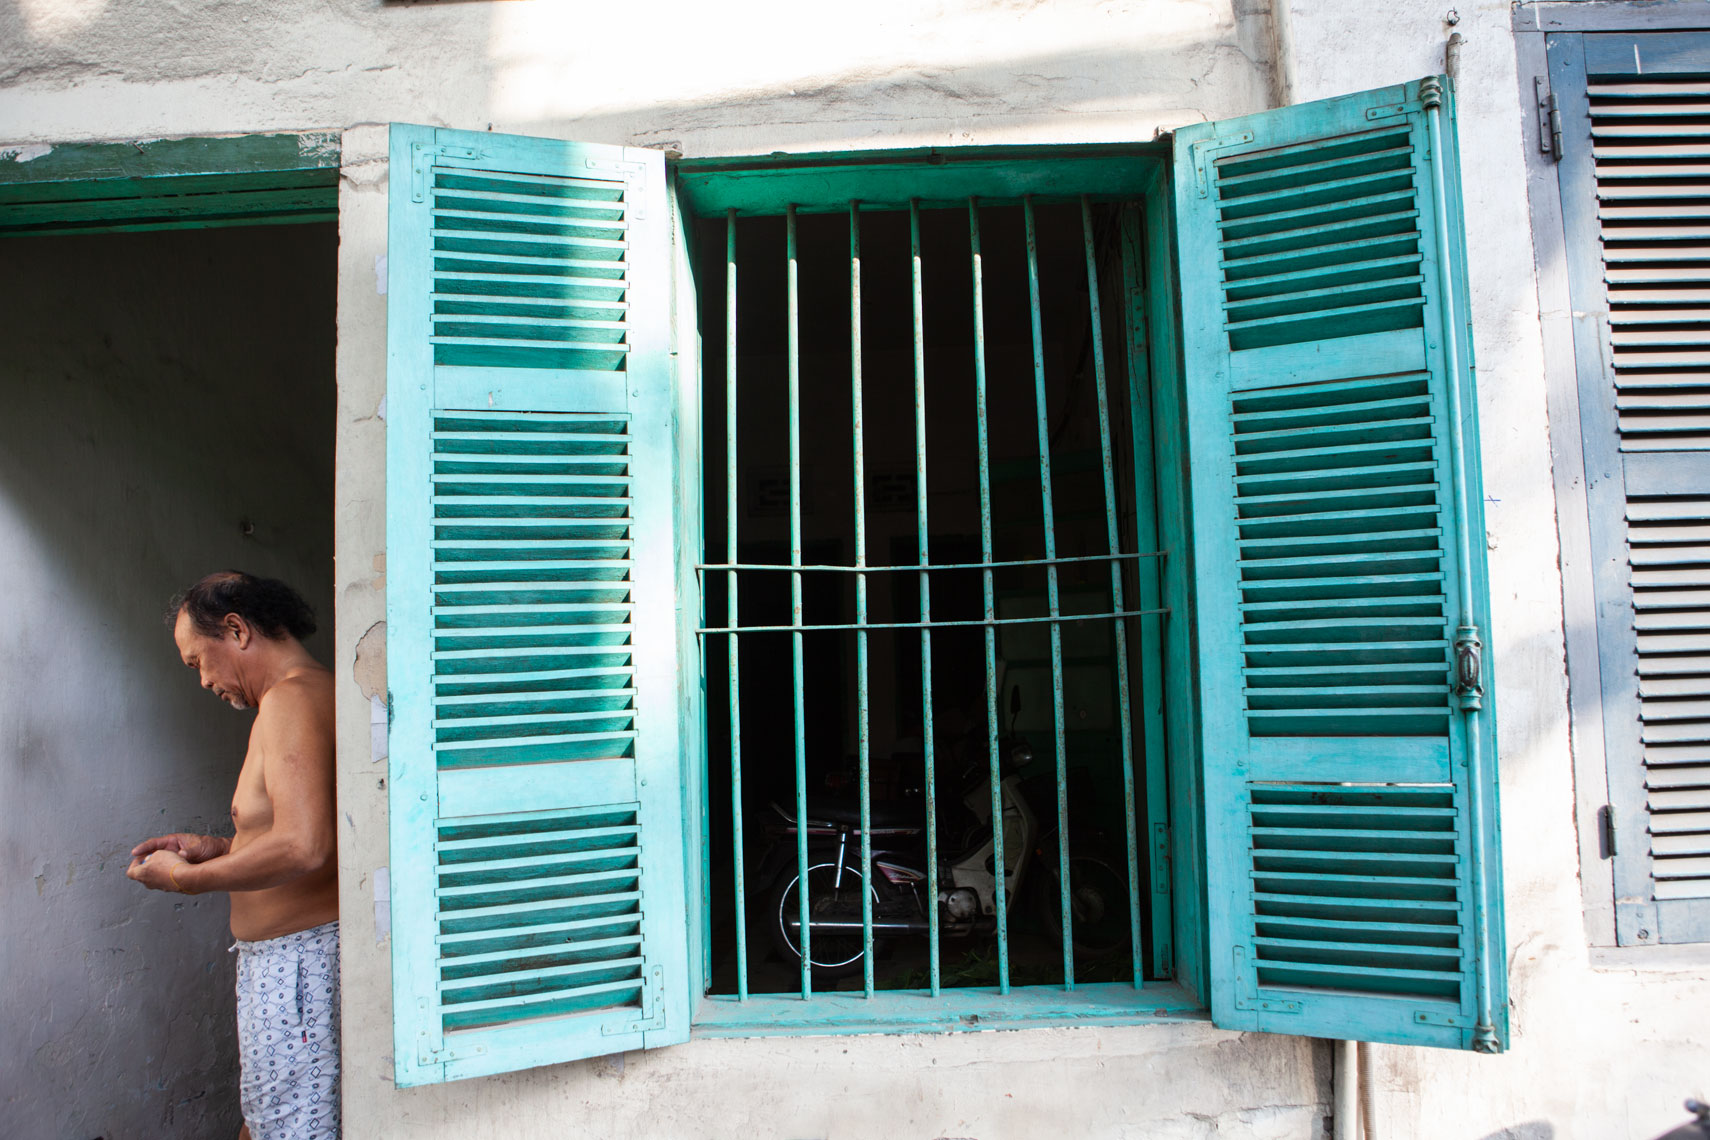 Hanoi-bare-chested-man-in-doorway